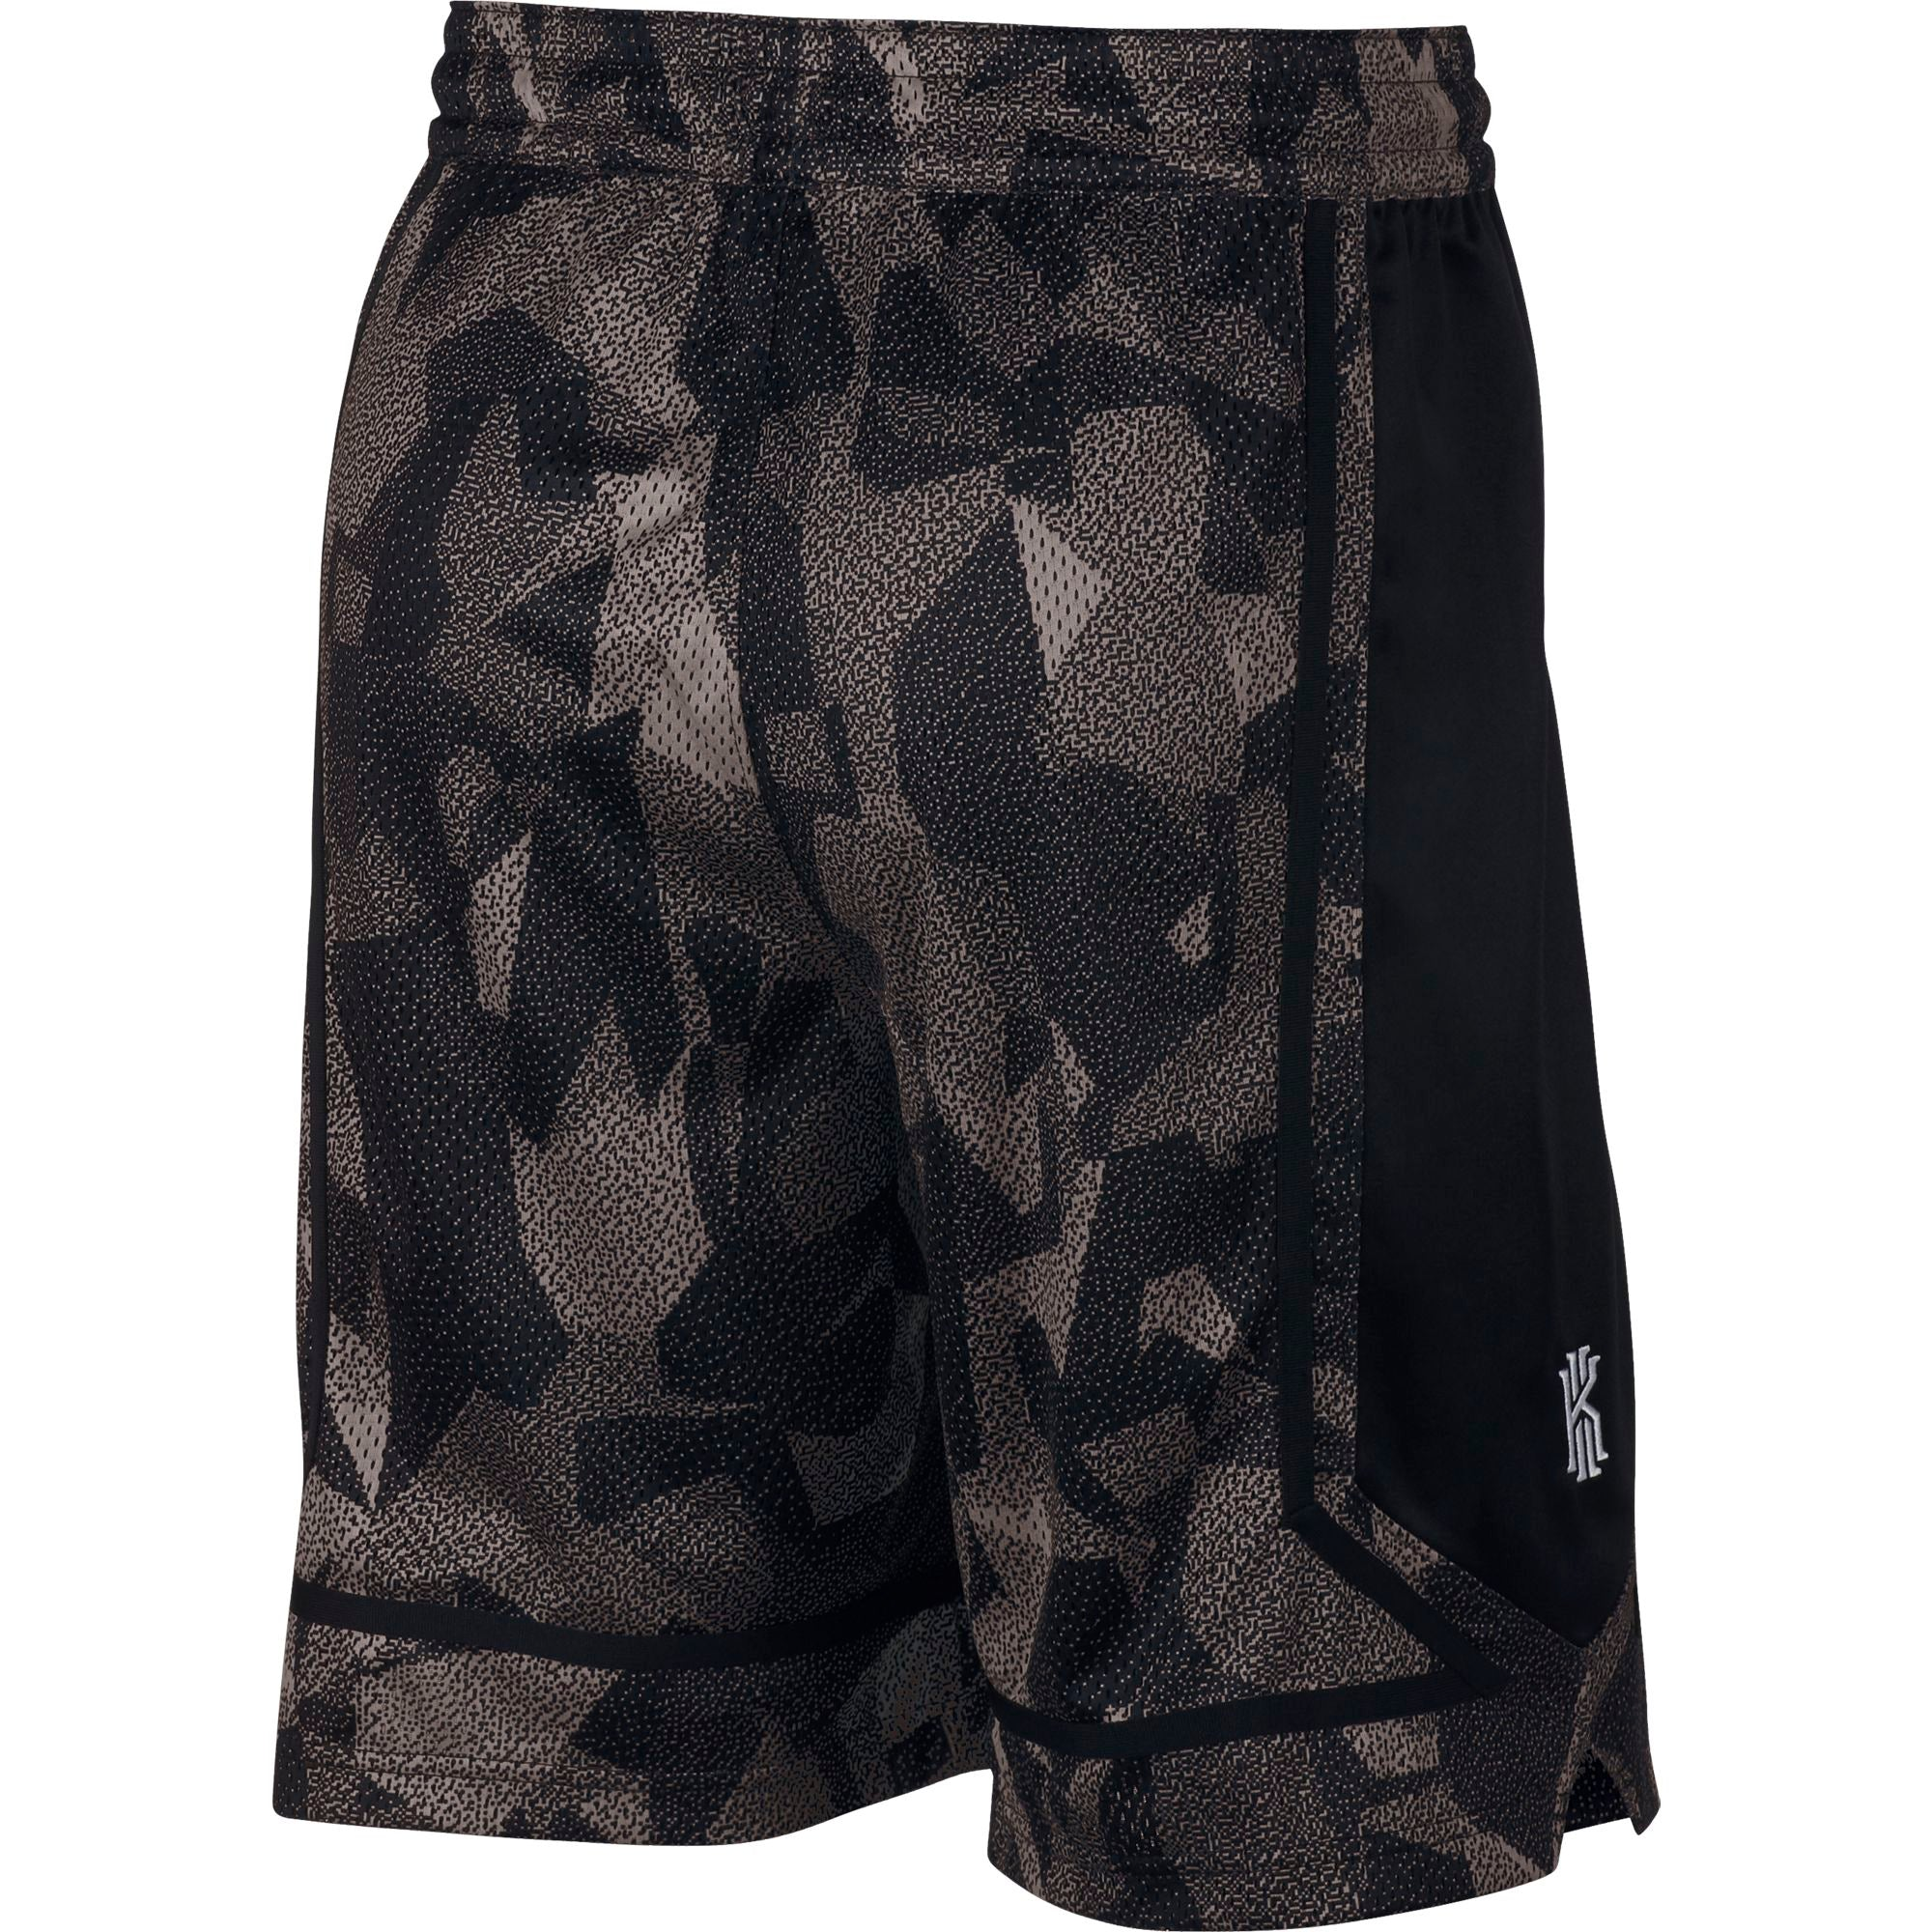 Nike Kyrie Elite Graphic Basketball Shorts - Light Orewood Brown/Black/White